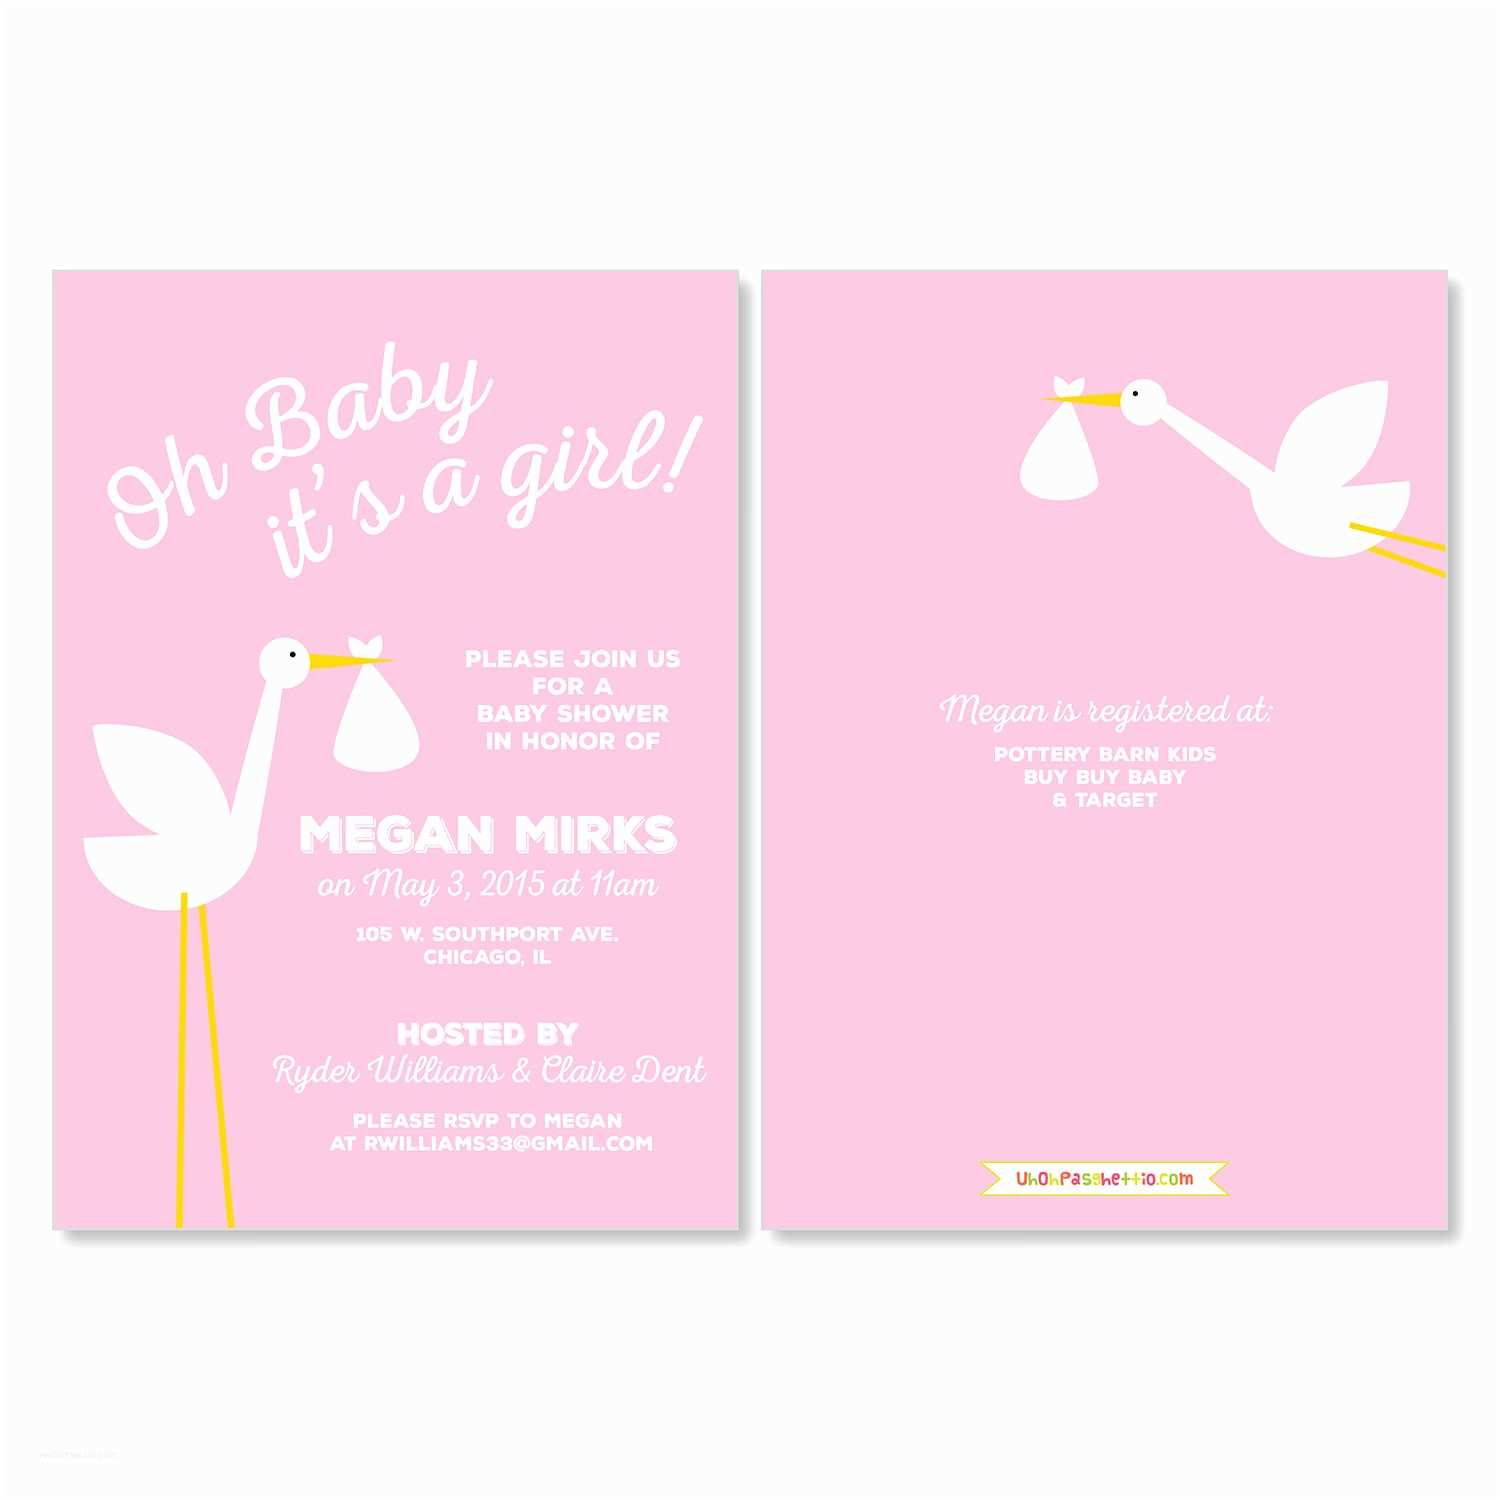 Pink Baby Shower Invitations It S A Stork Uh Oh Pasghettio